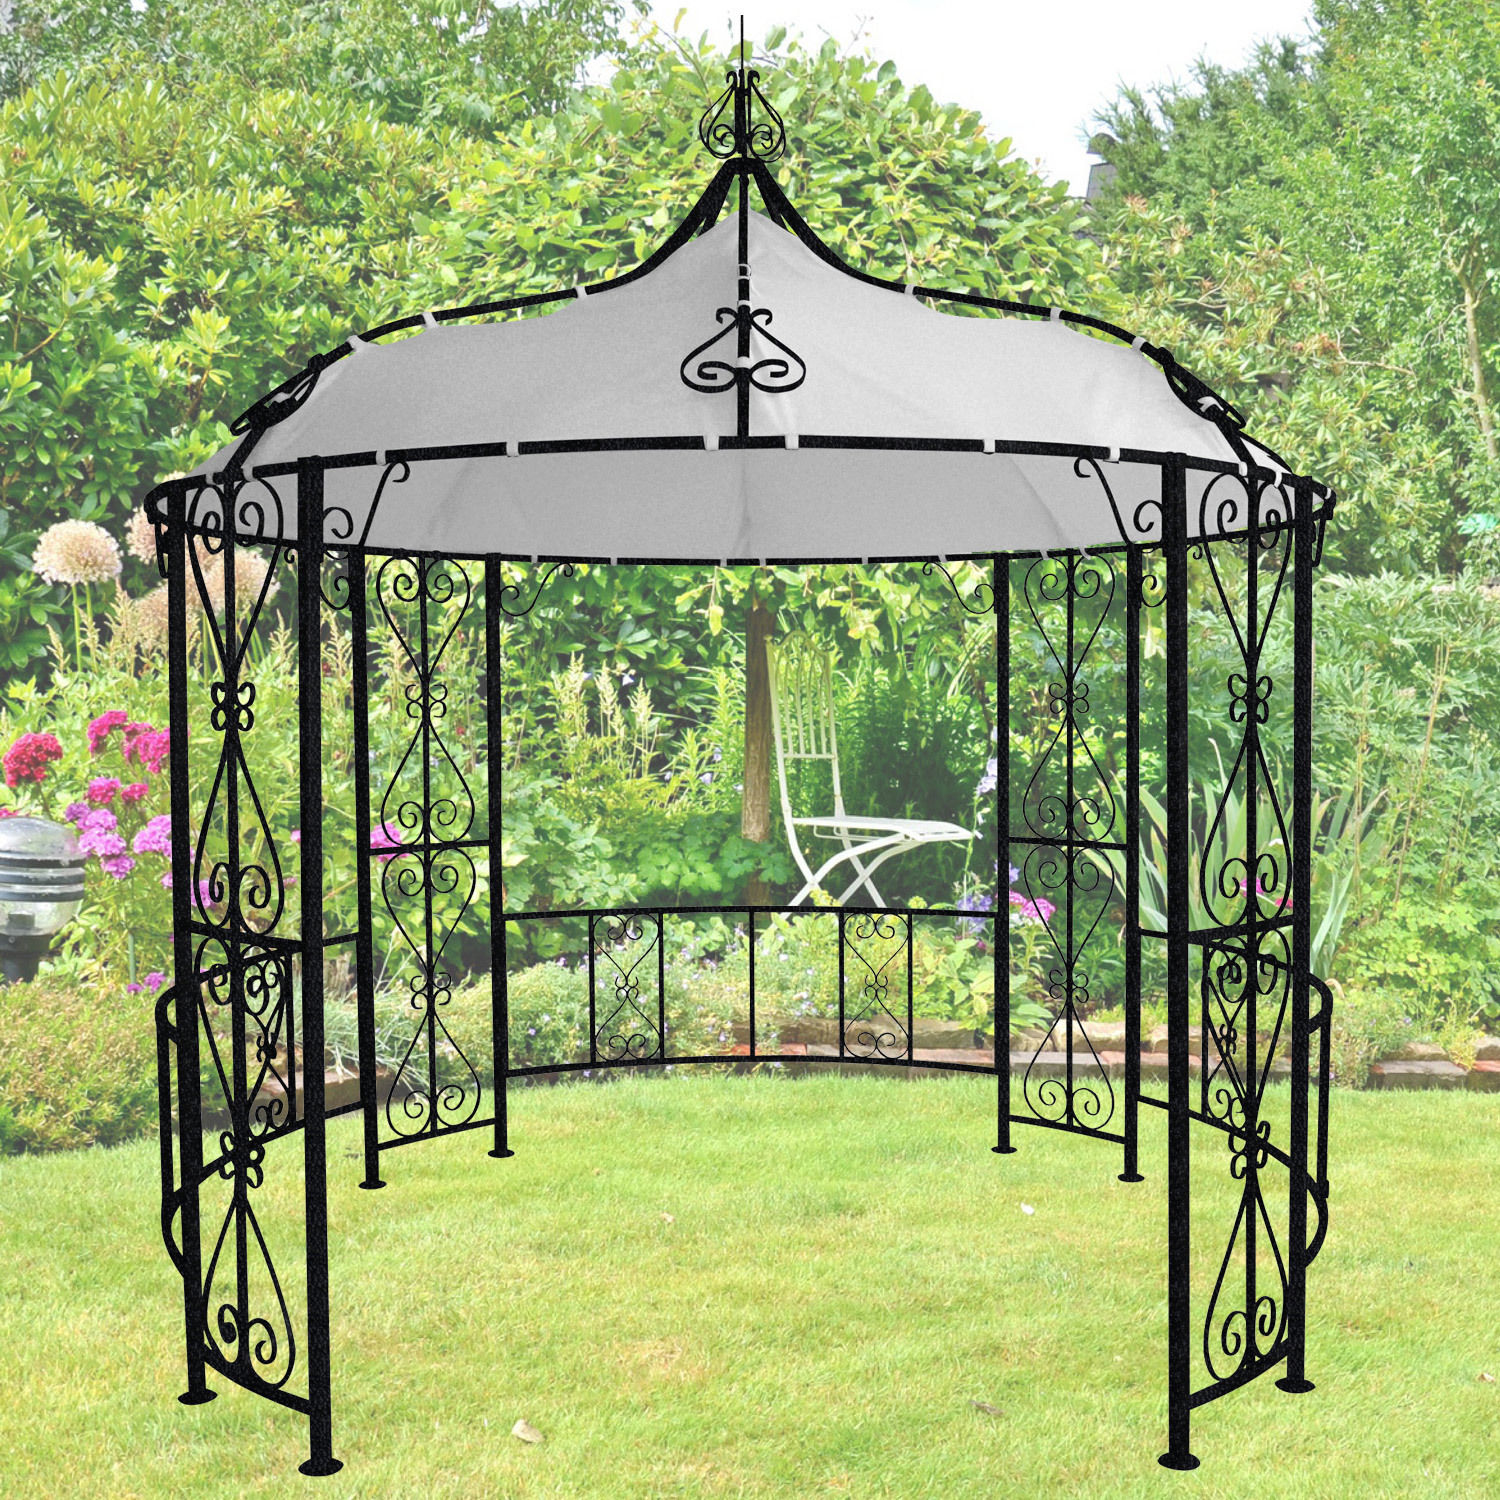 miganeo gazebo metall pavillon pavillion zelt 3x3x2 9m savona. Black Bedroom Furniture Sets. Home Design Ideas